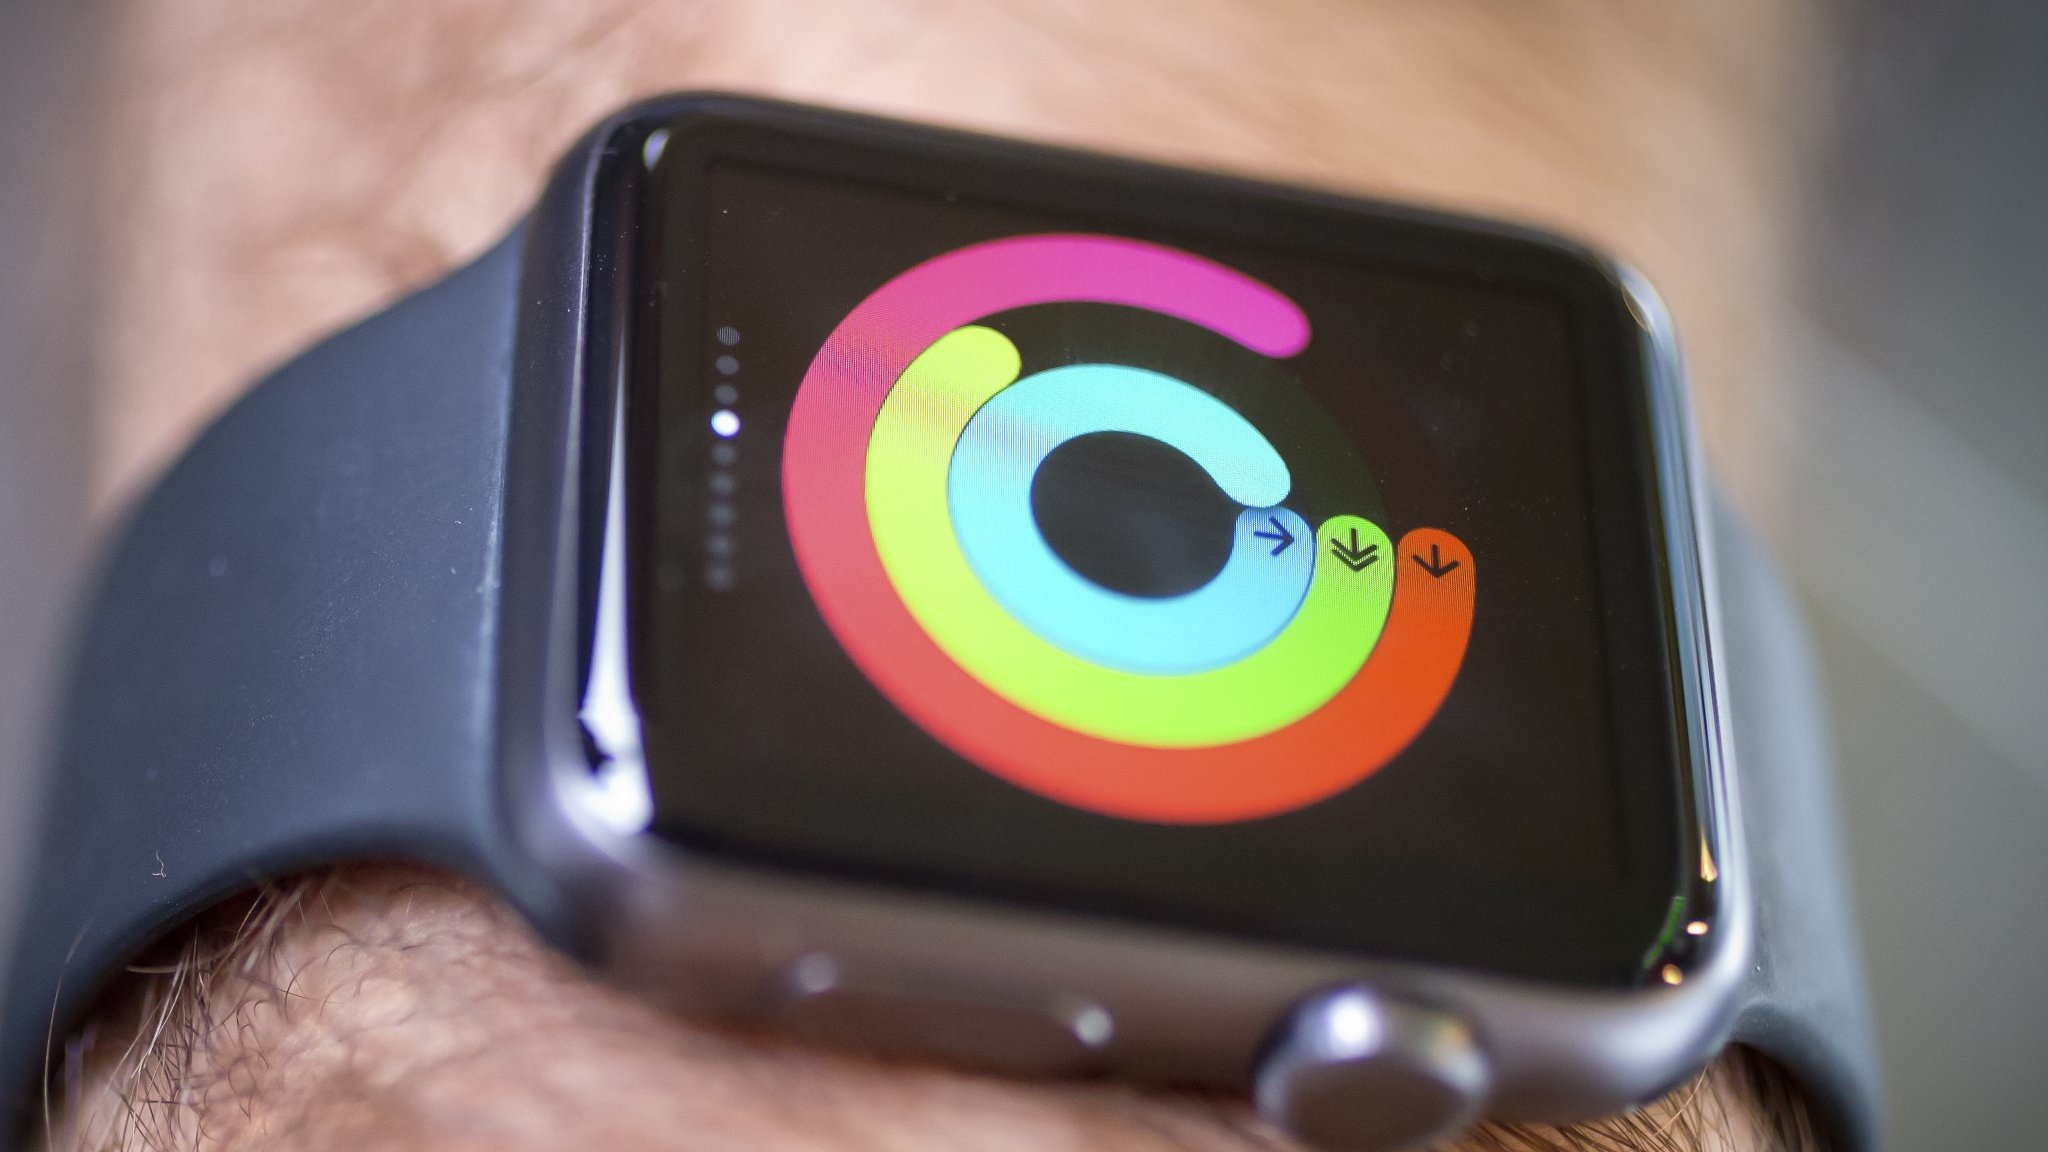 John Hancock adds fitness tracking to all policies